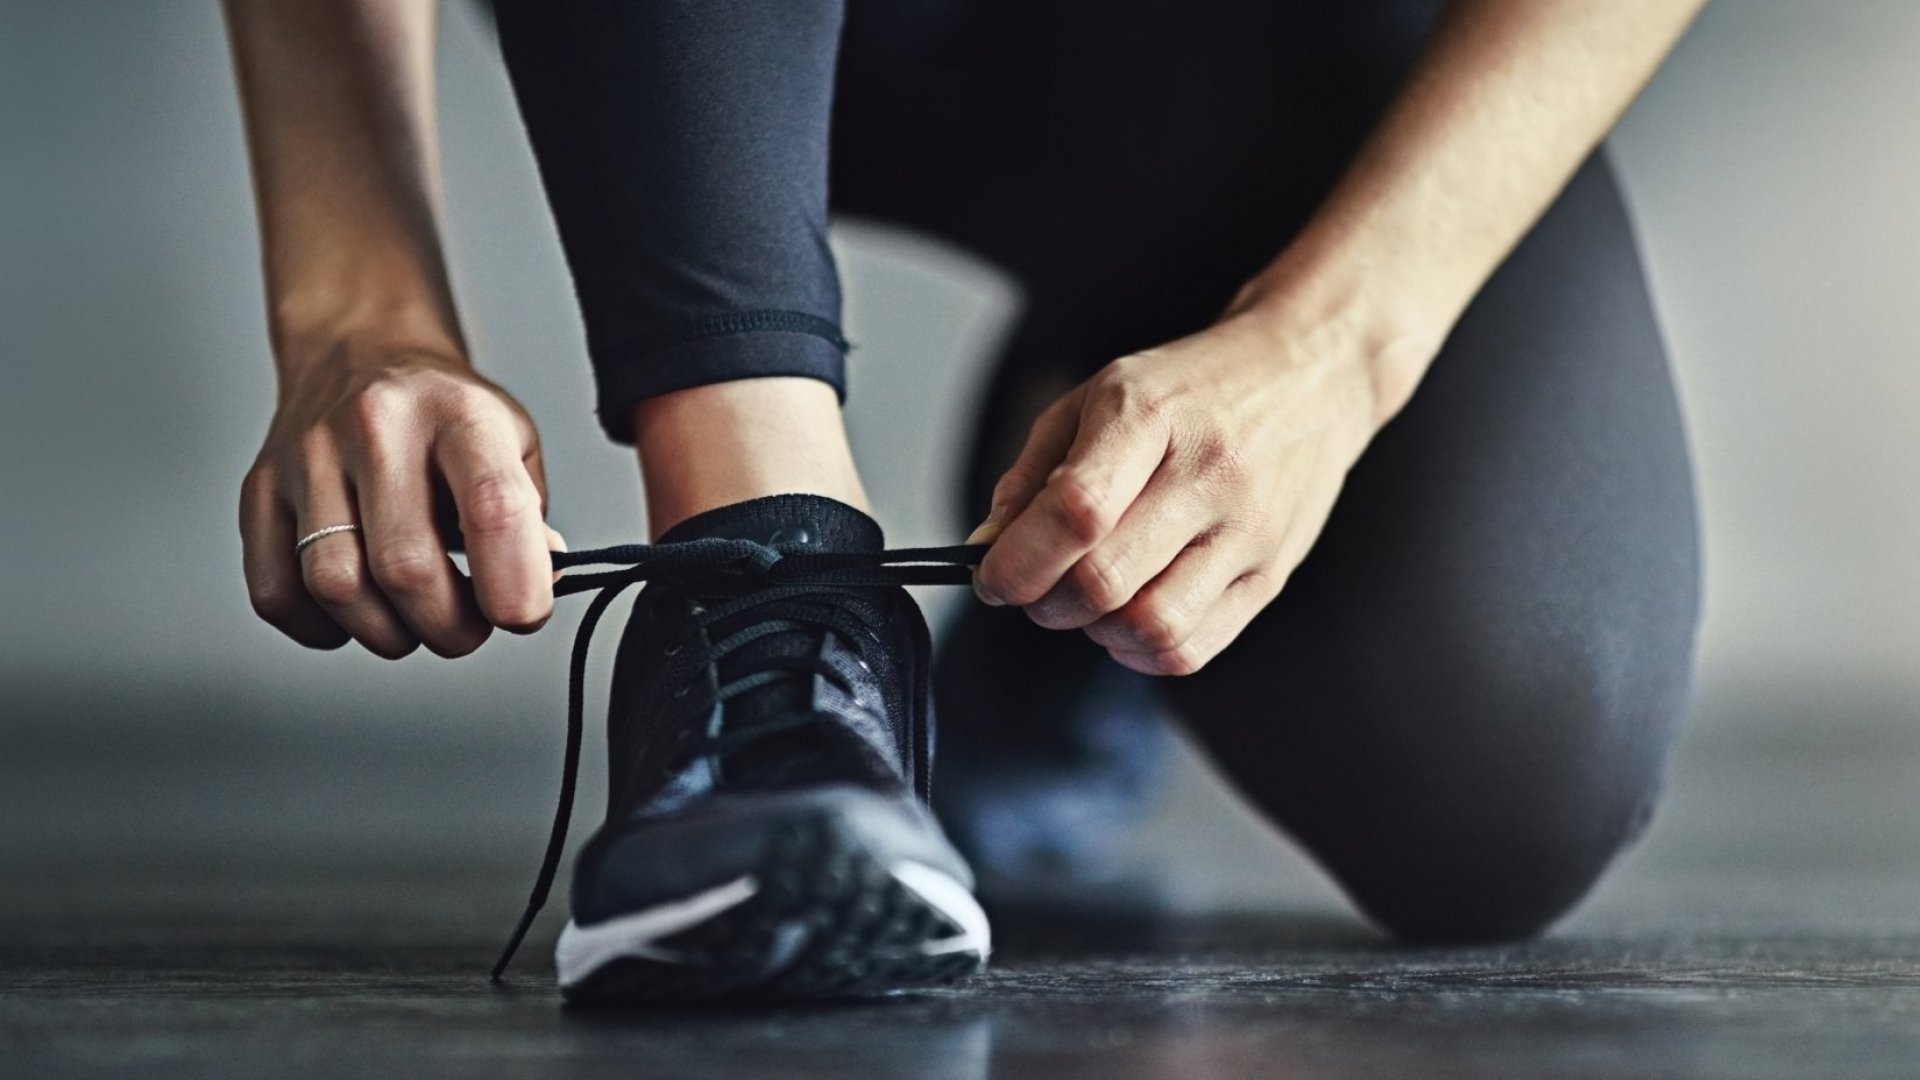 Exercise can boost productivity throughout a long workday.